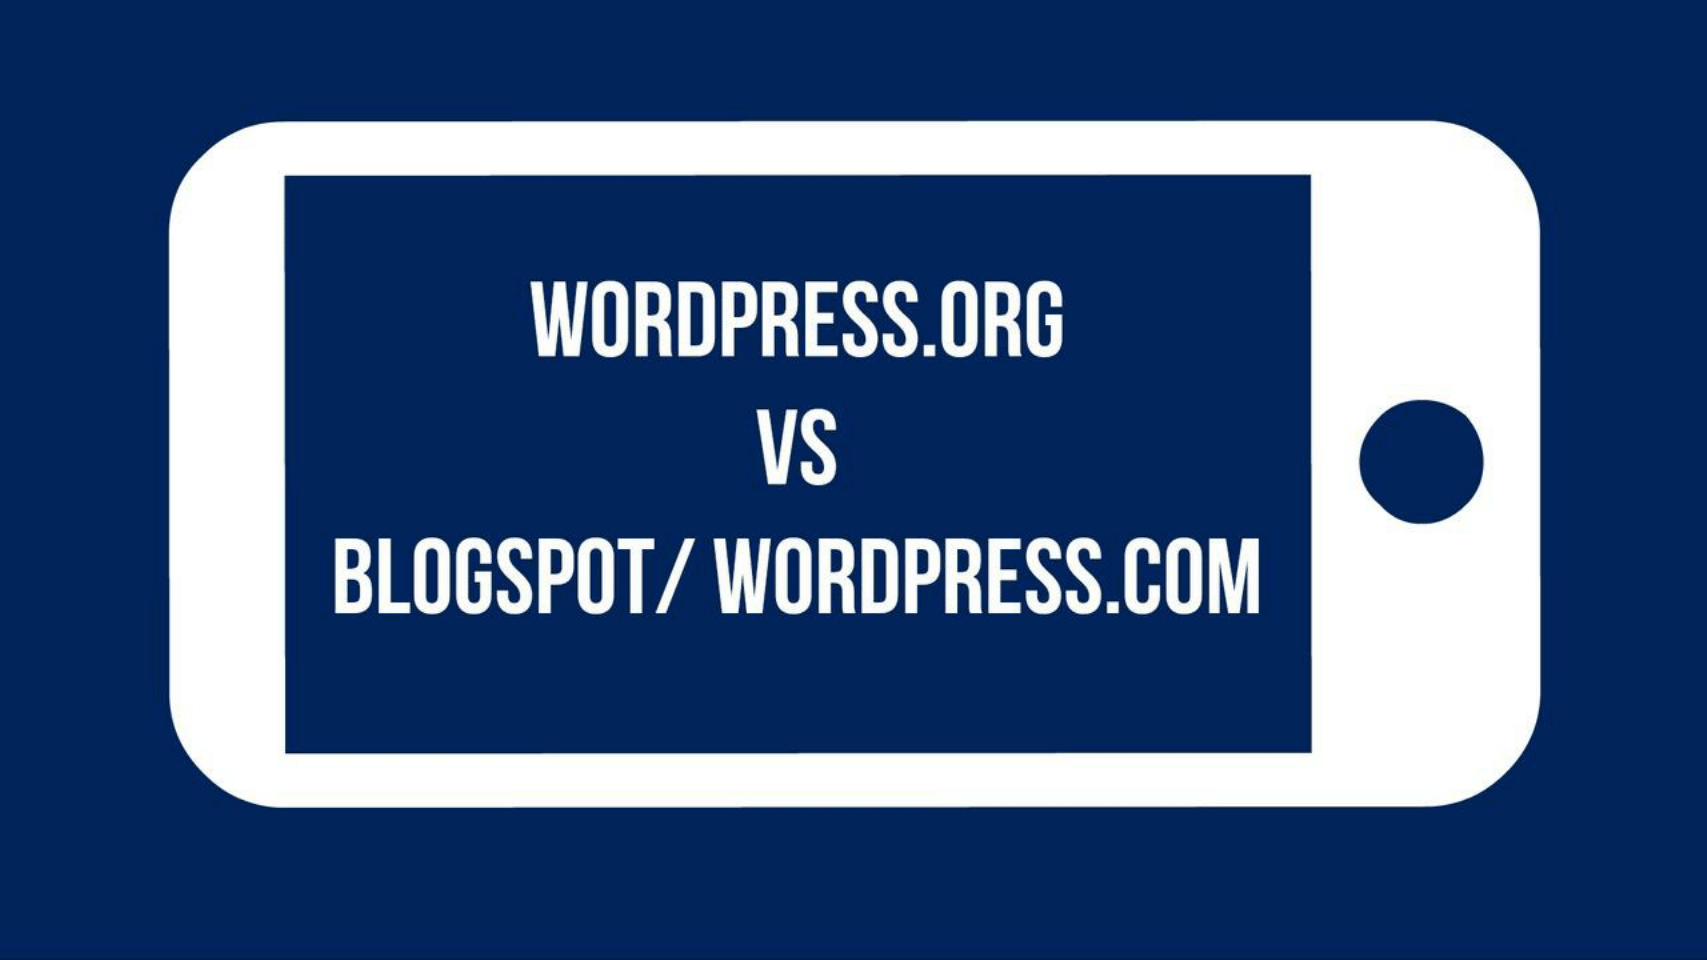 wordpress.org-vs-blogspot-wordpress.com